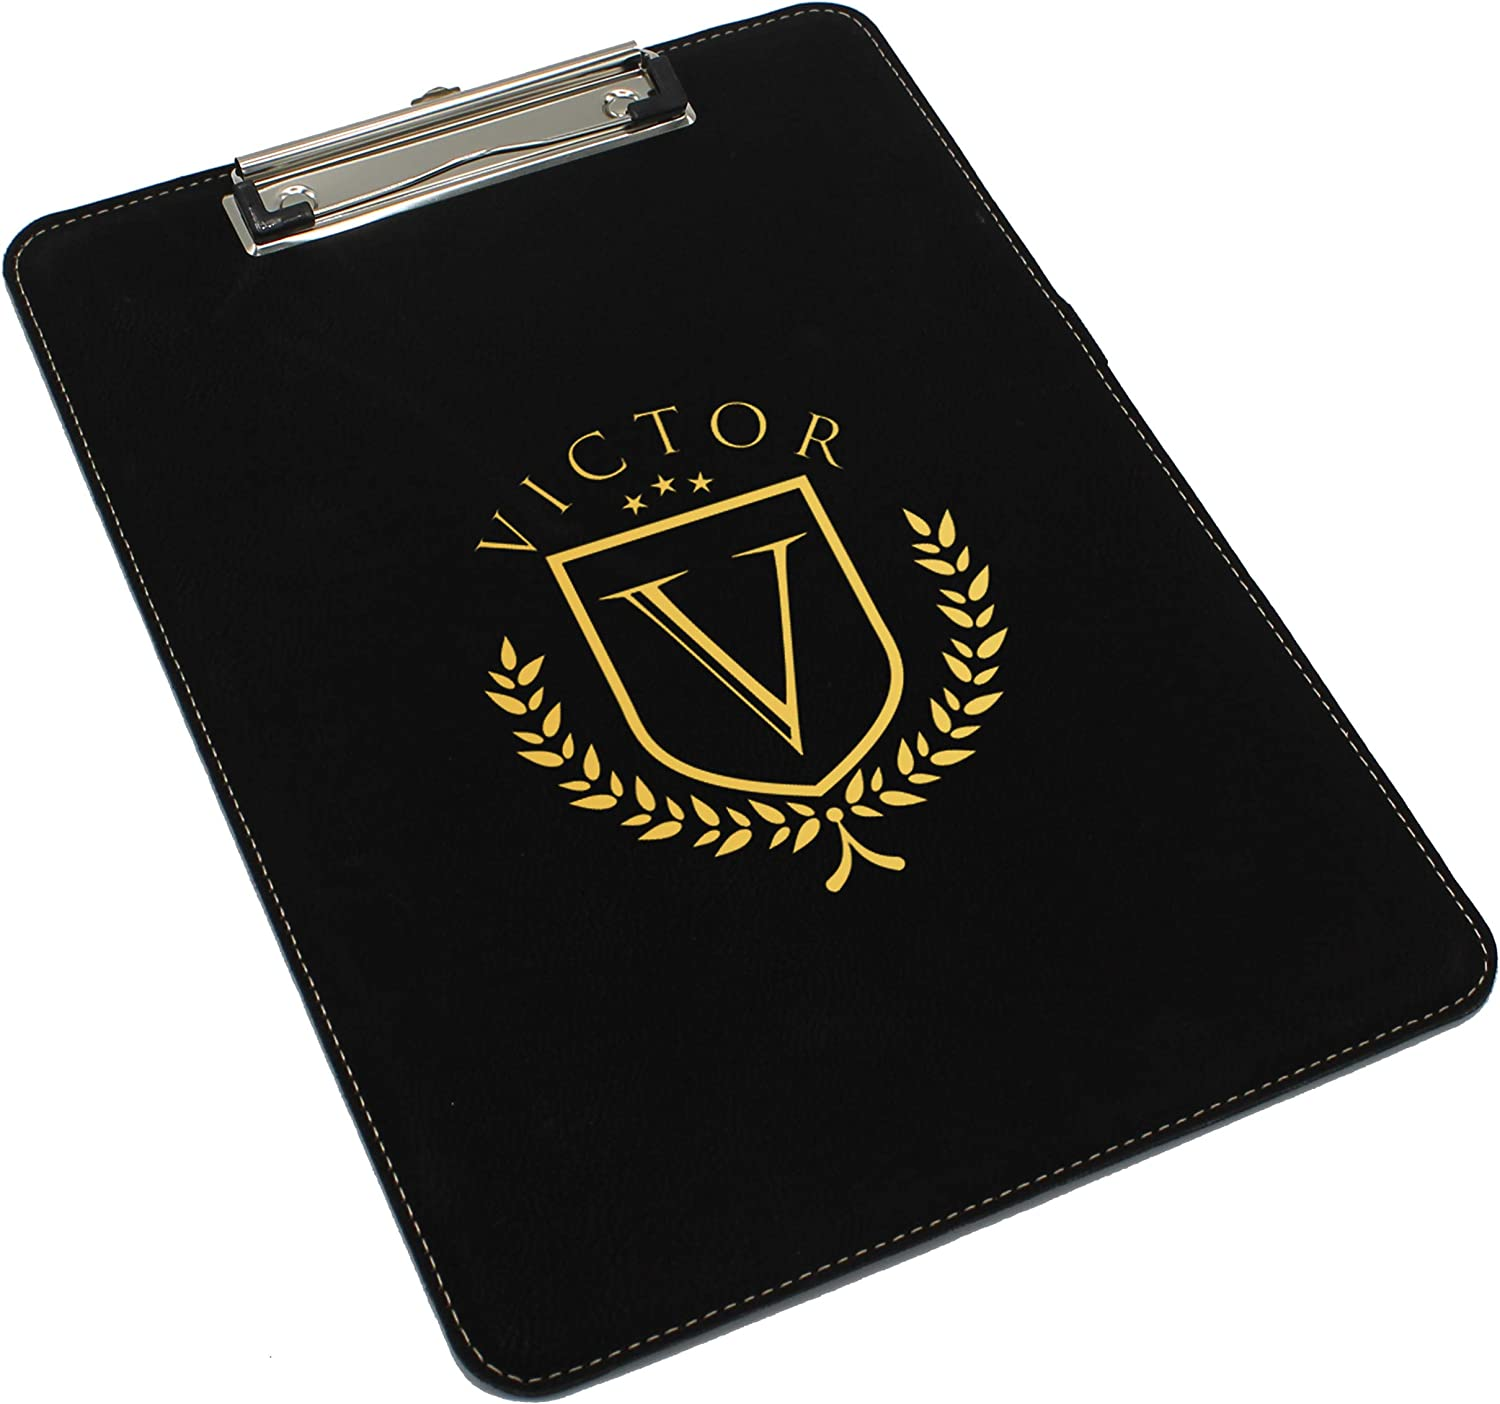 Custom Engraved Clipboard, Paper Holder - Personalized Office Gift for Coaches, Teachers, Medical Student, Doctors, Nurses (Black with Gold)